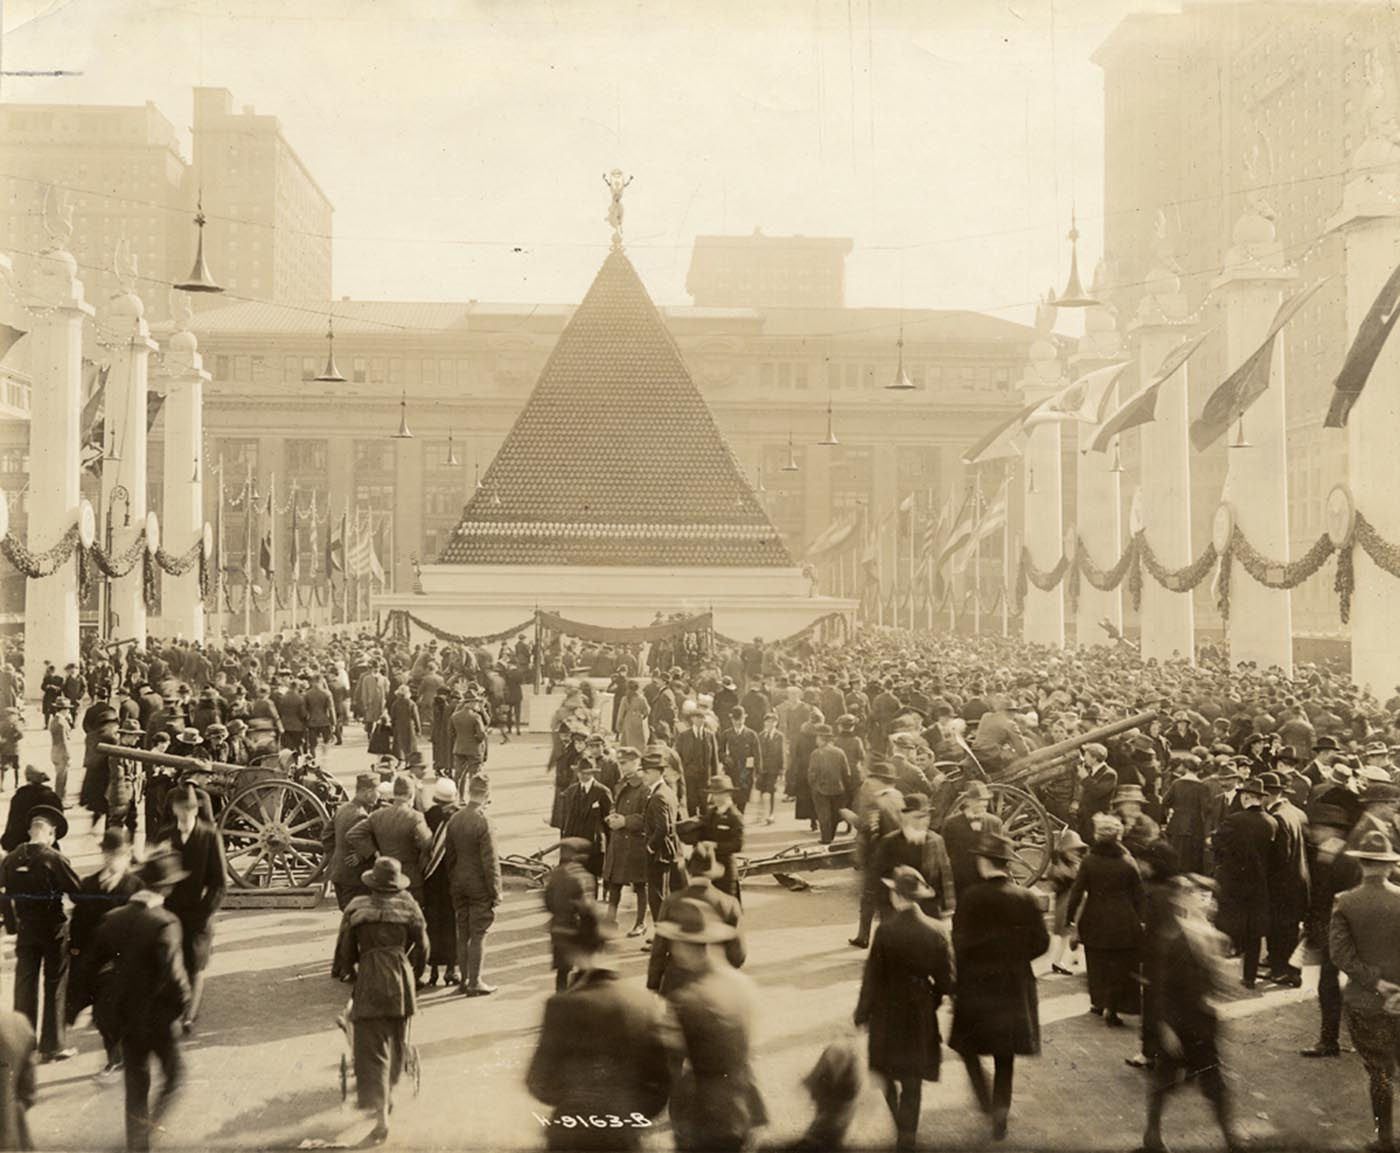 Pyramid of WWI German helmets at Grand Central, 1918.